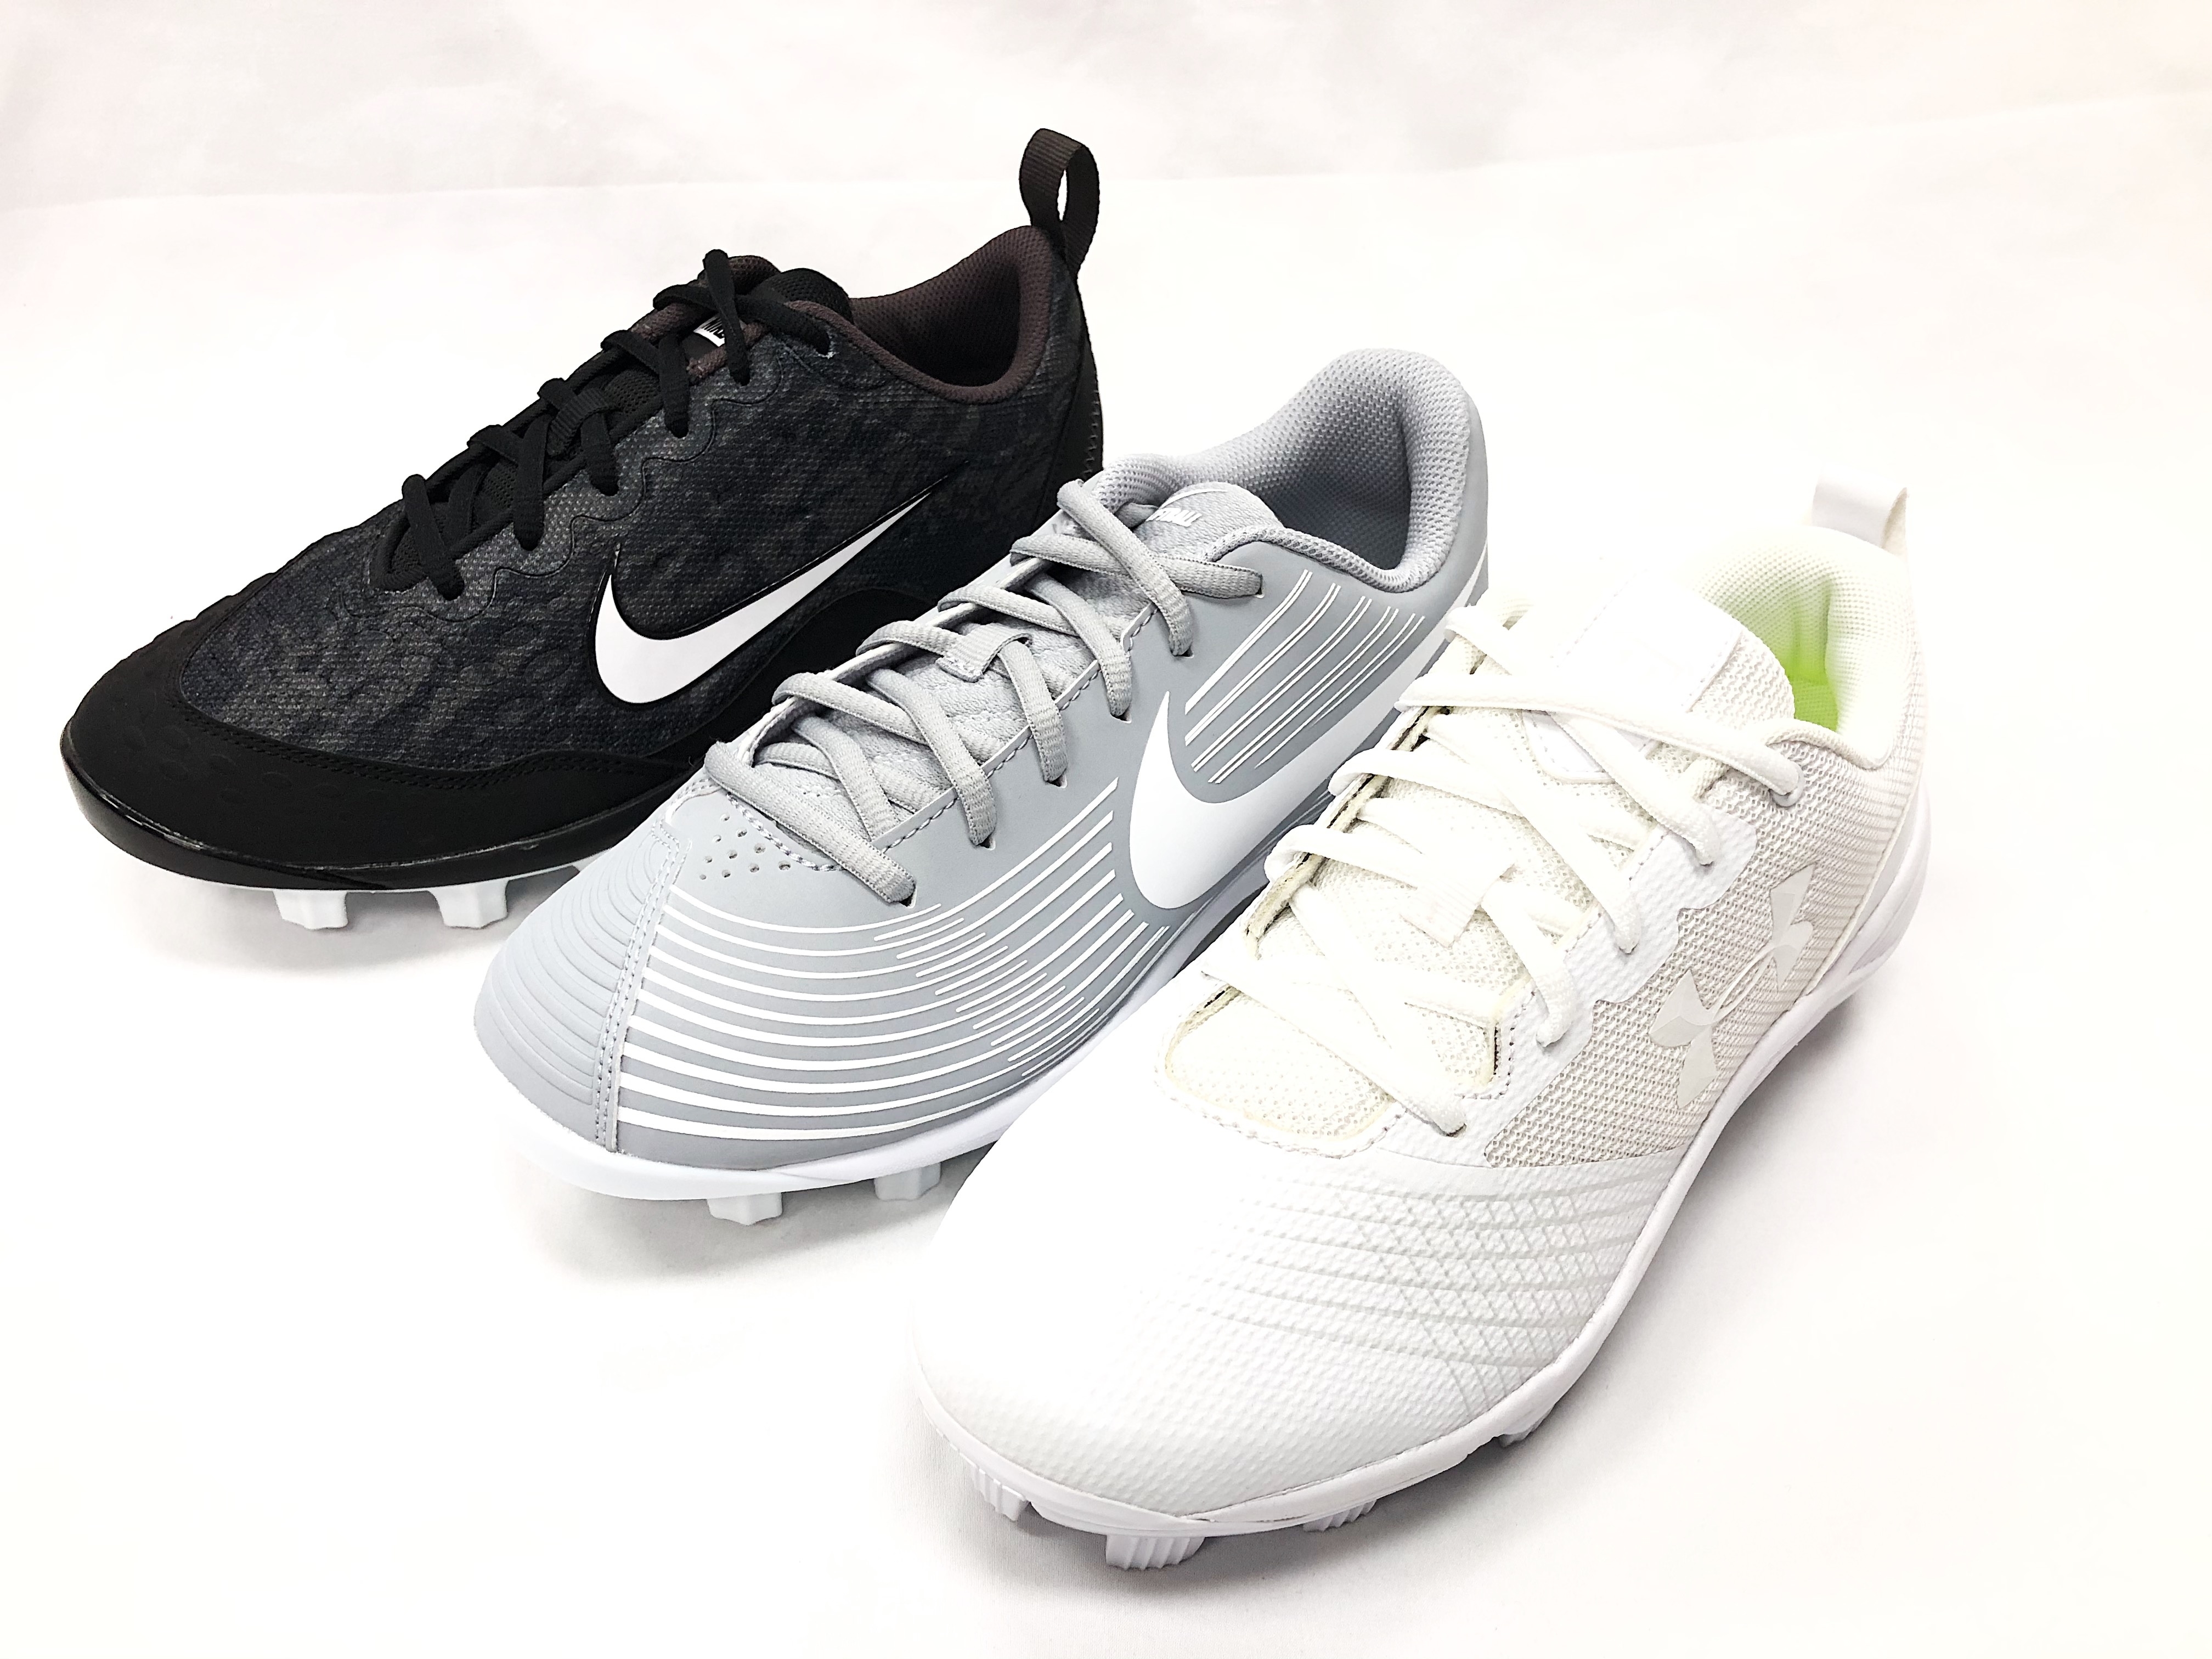 Nike & Under Armour Softball Cleats